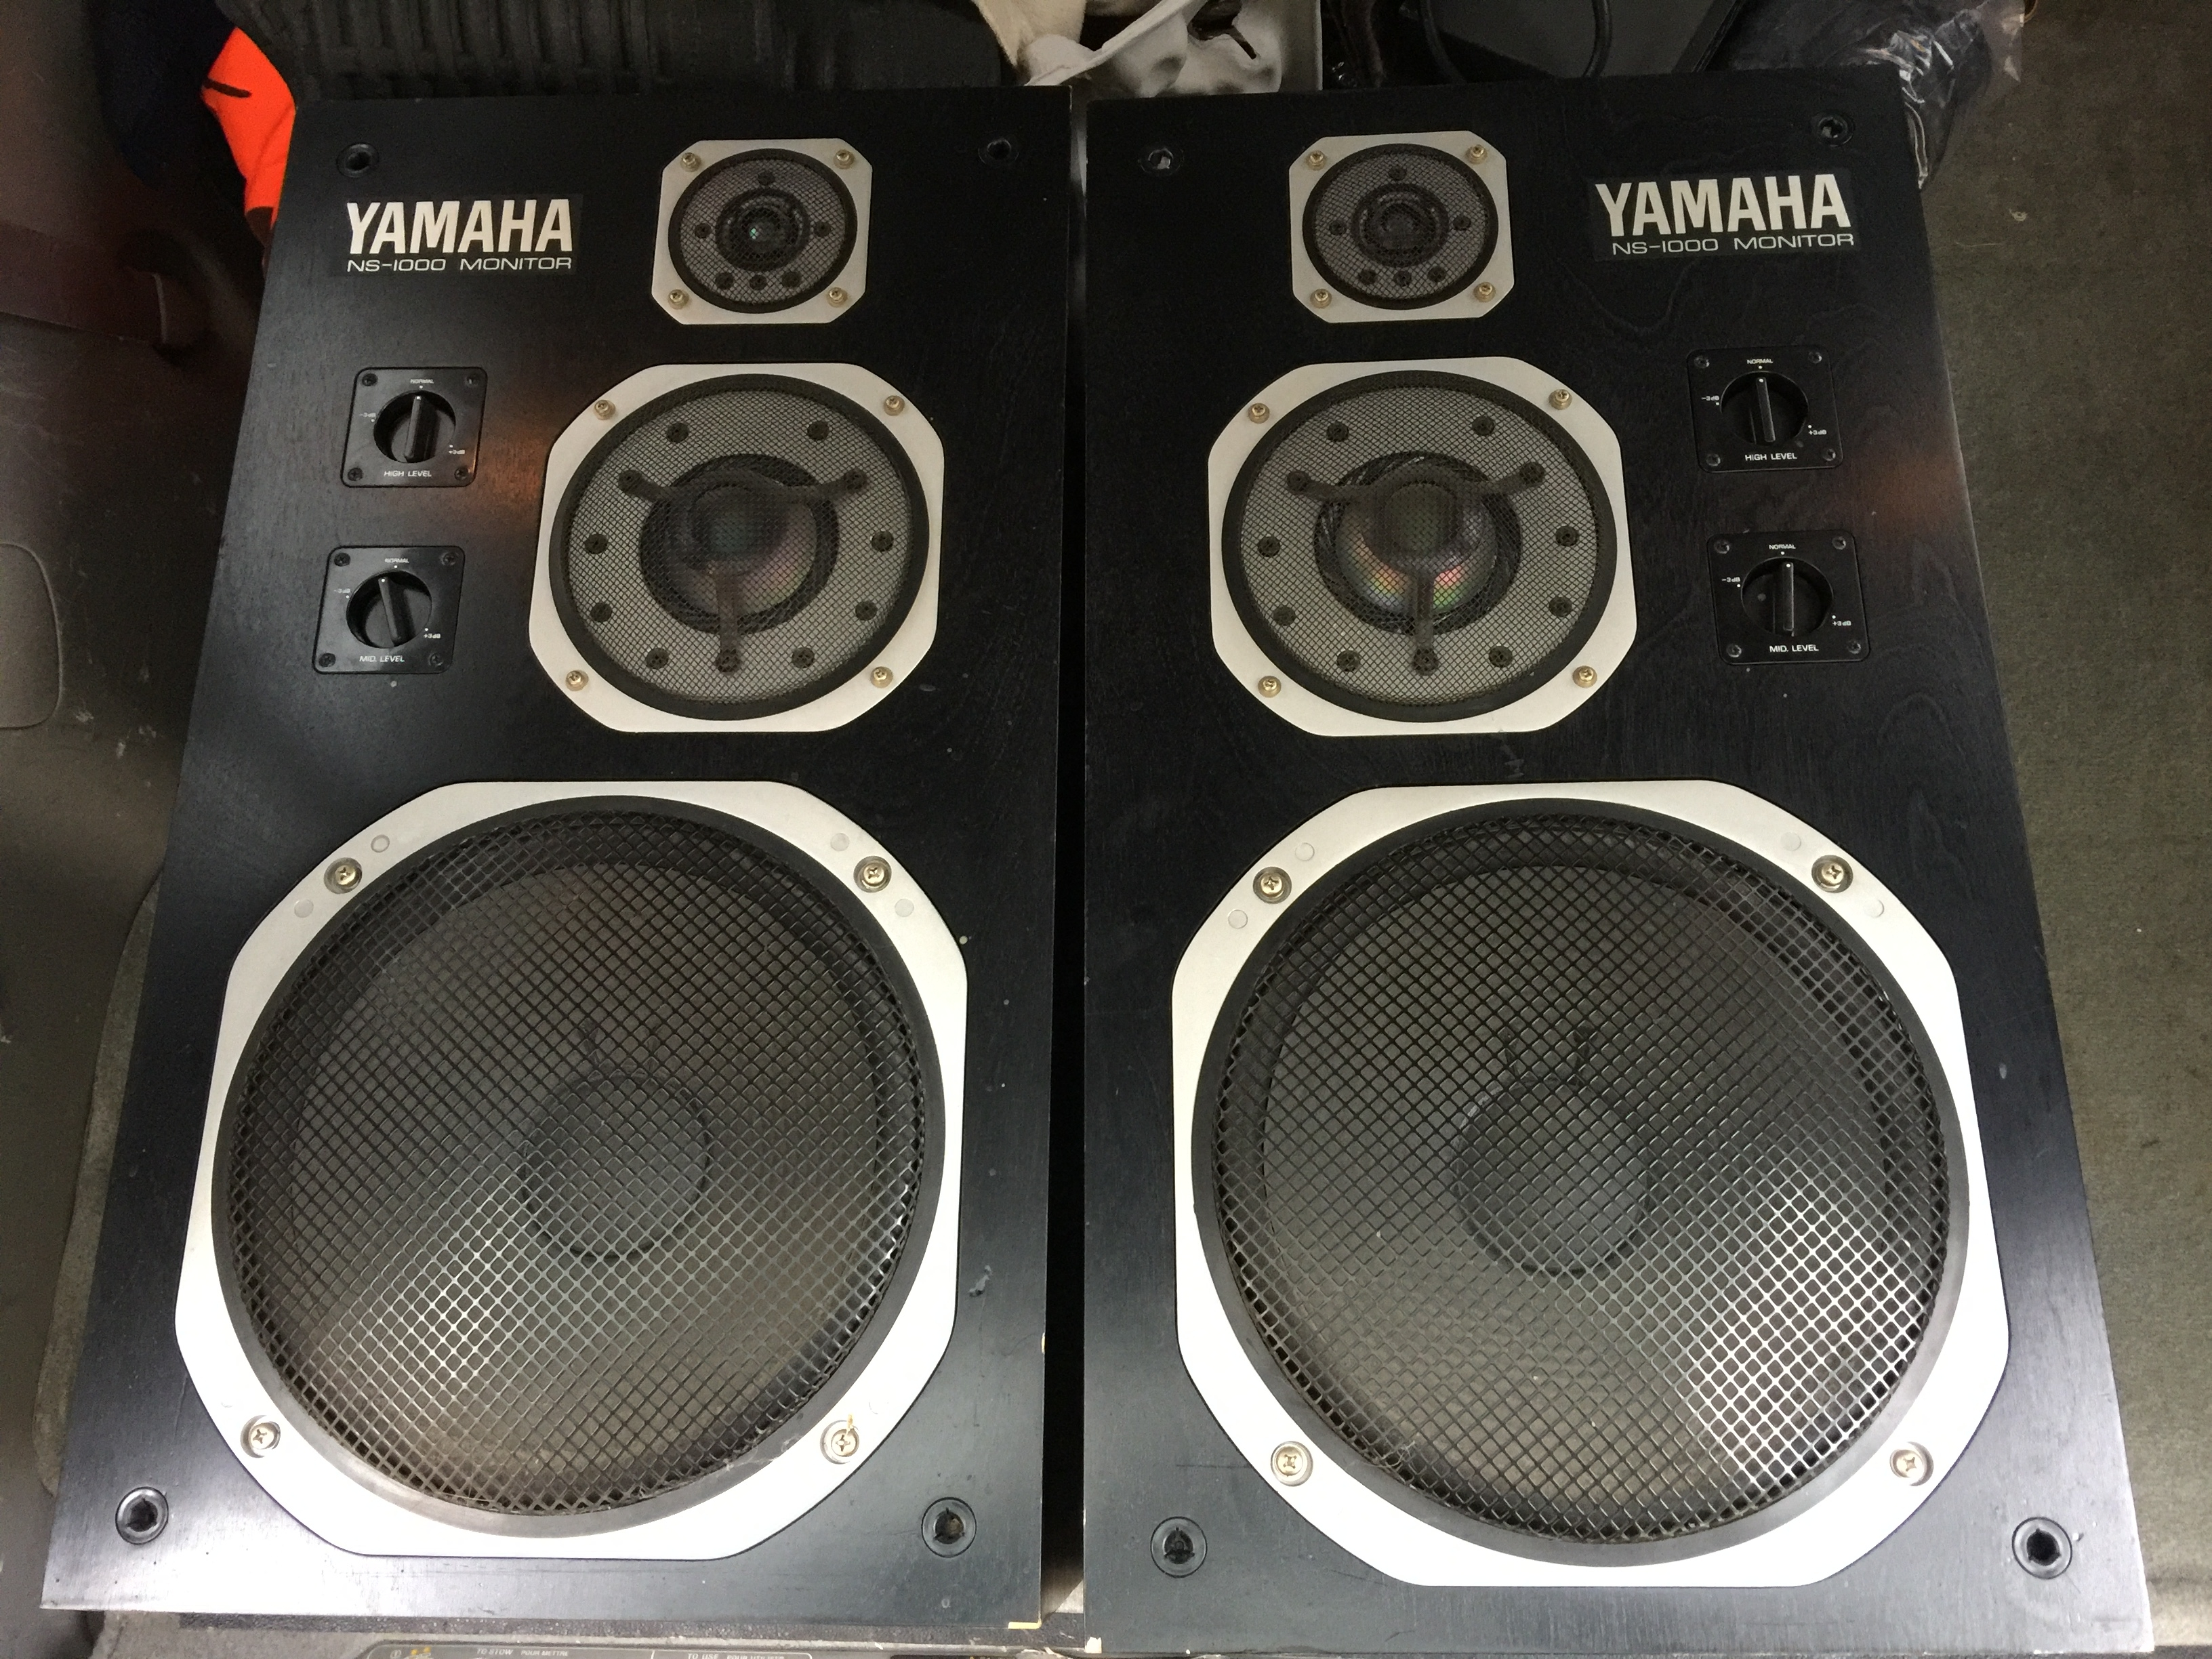 New yamaha ns 1000 39 s in the house polk audio for Garage yamaha paris